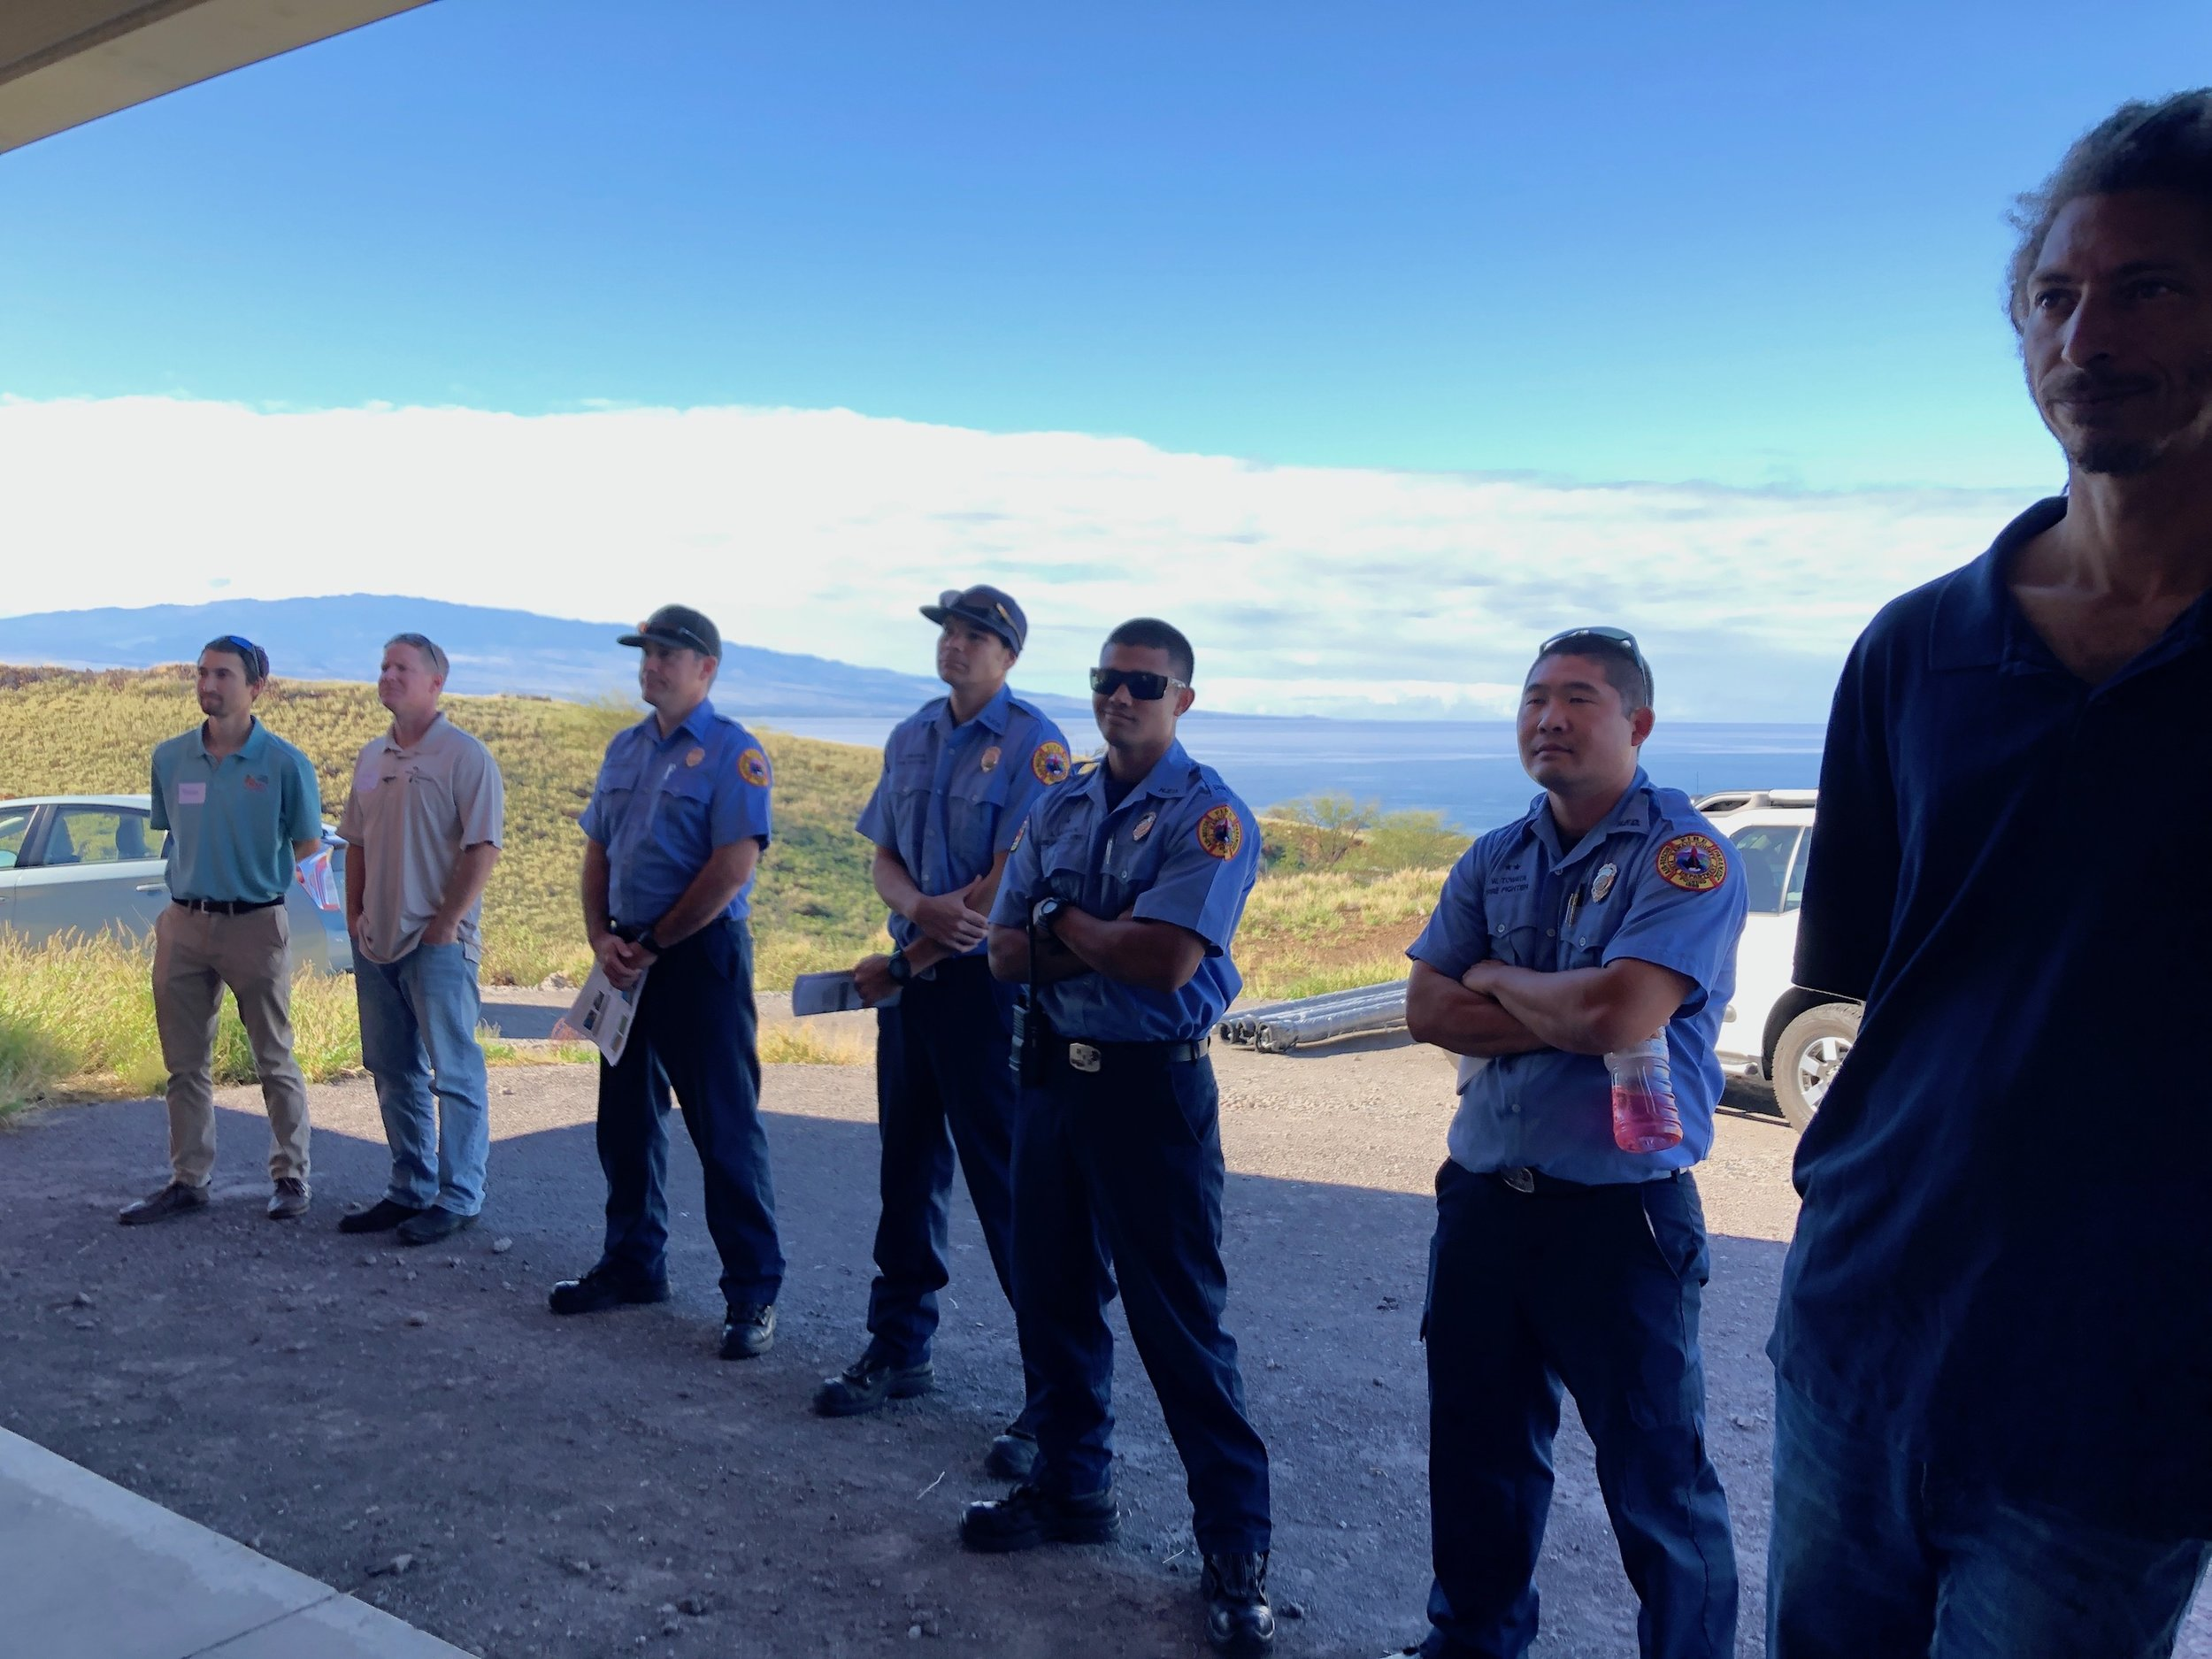 Hawaii Island Kailapa Vegetative Fuels Management Collaborative Action Planning Workshop_2_26_2019_15.jpg